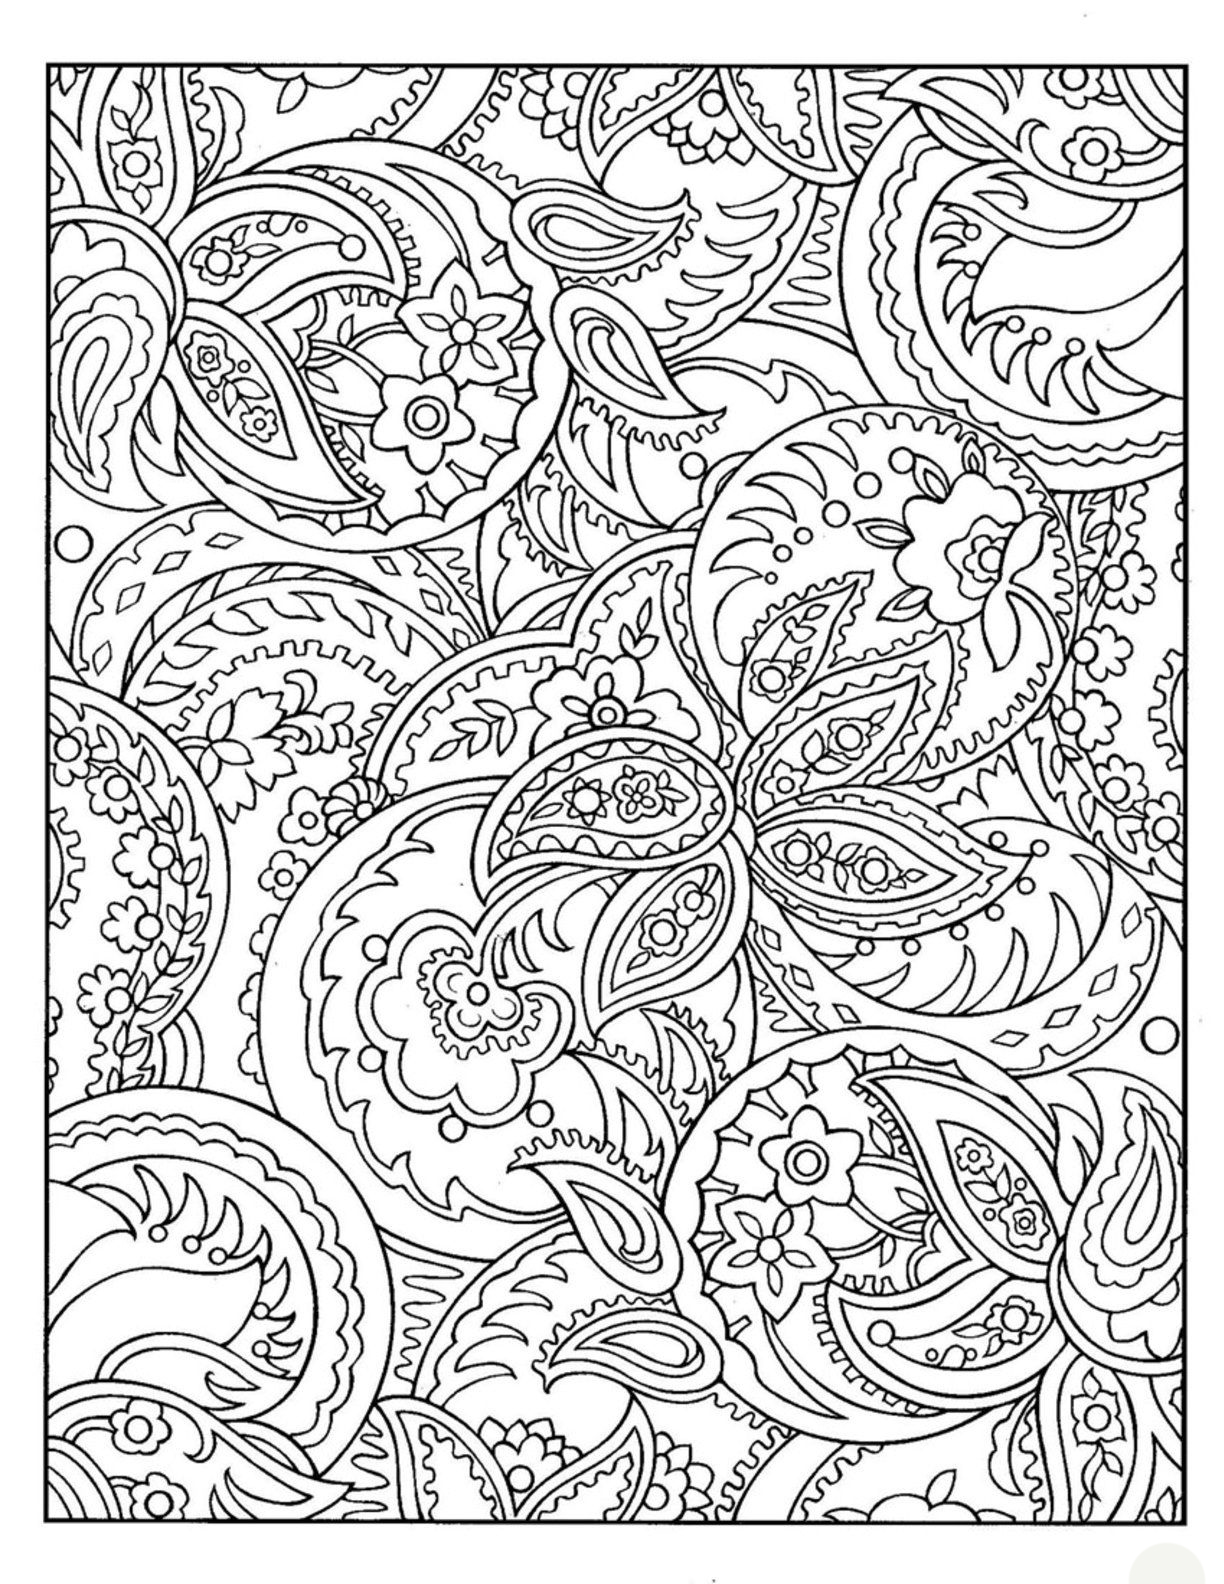 designs for coloring cool geometric design coloring pages coloring home for coloring designs